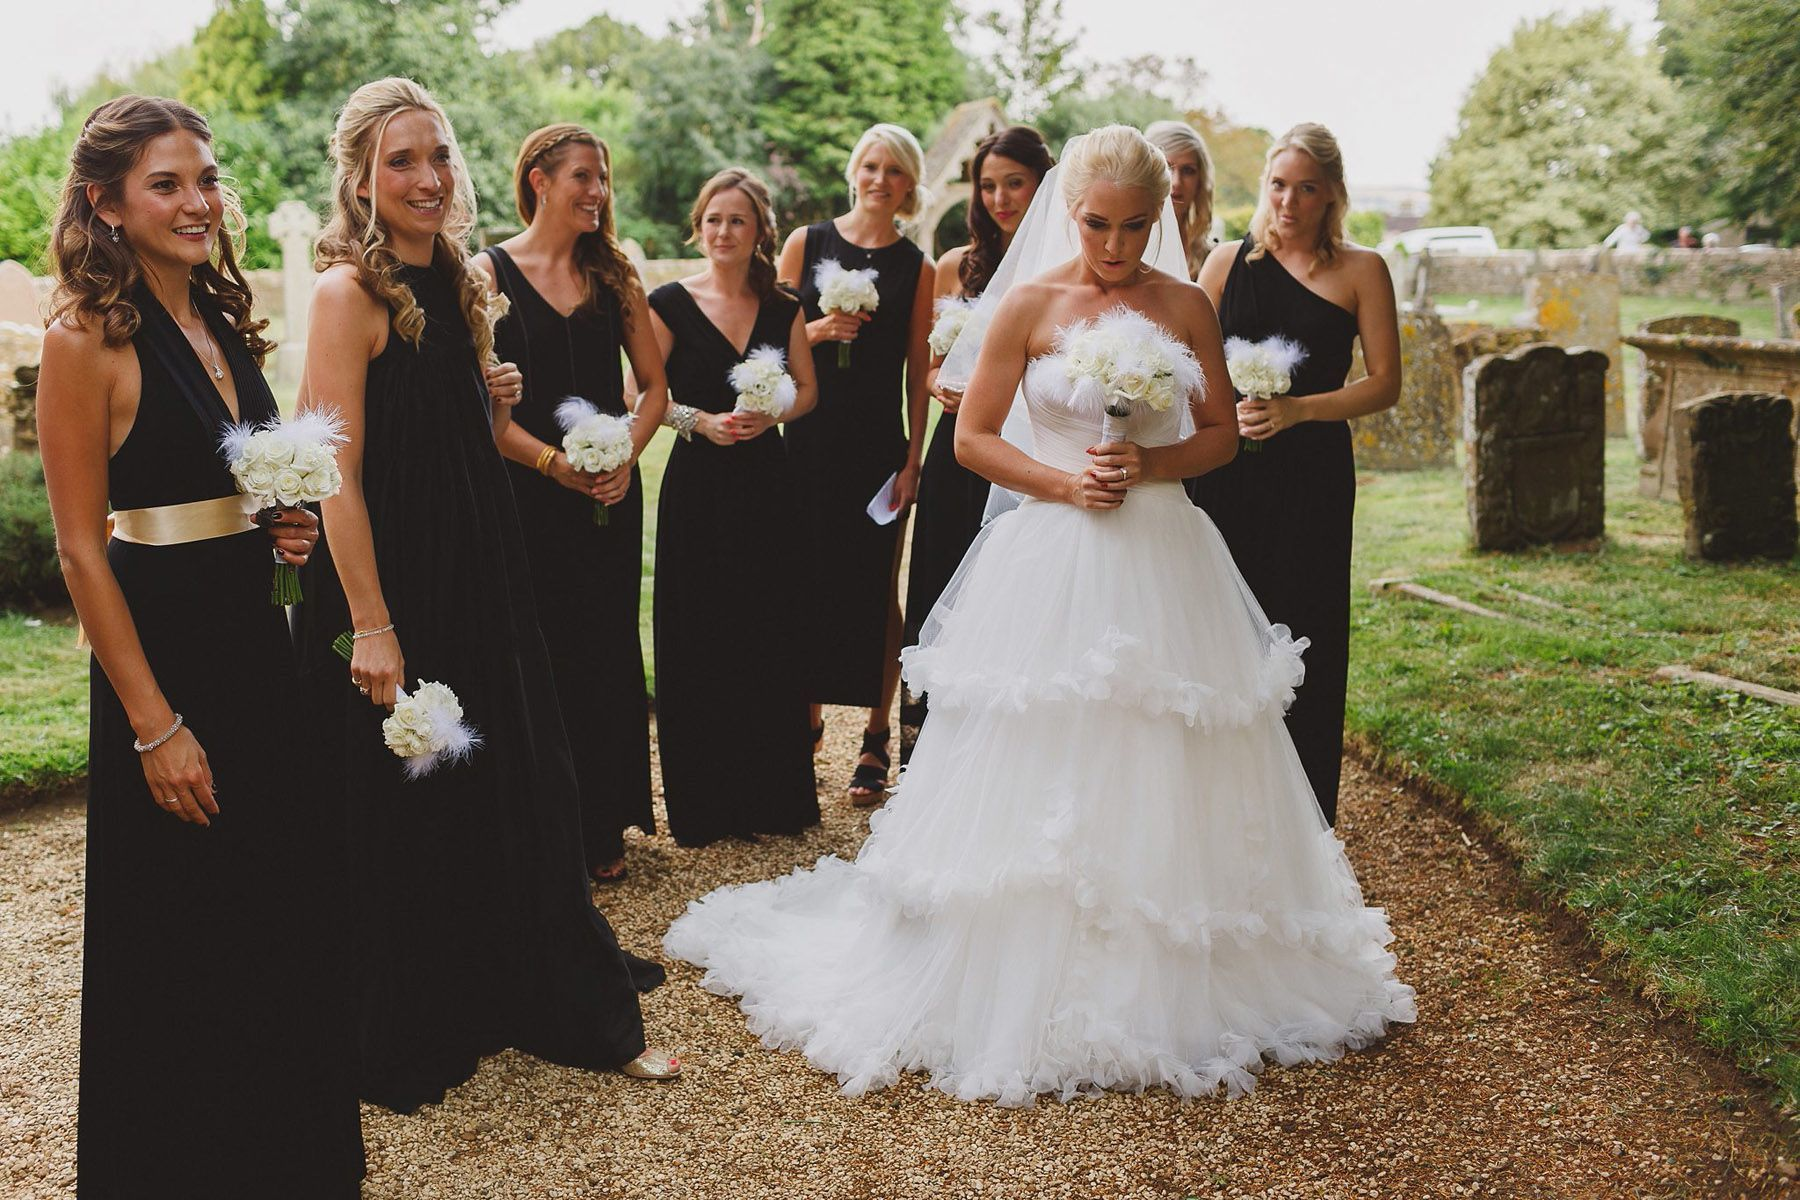 oxfordshire-wedding-photographer-027